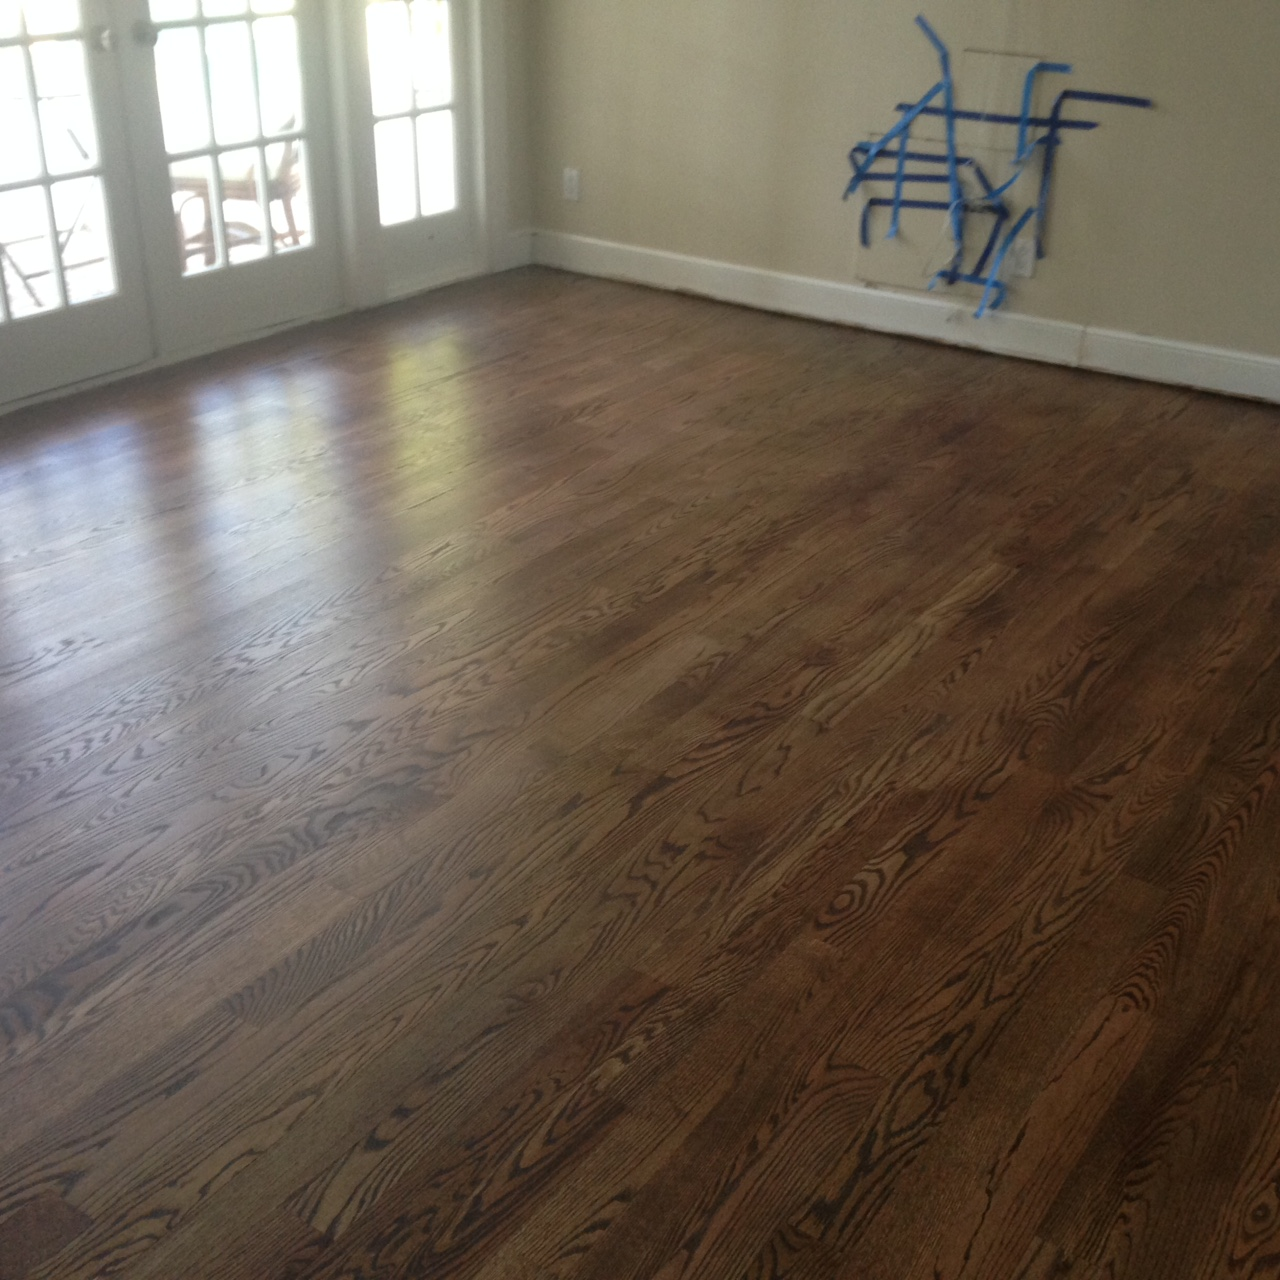 Sand Free Hardwood Floor Refinishing Carpet Review